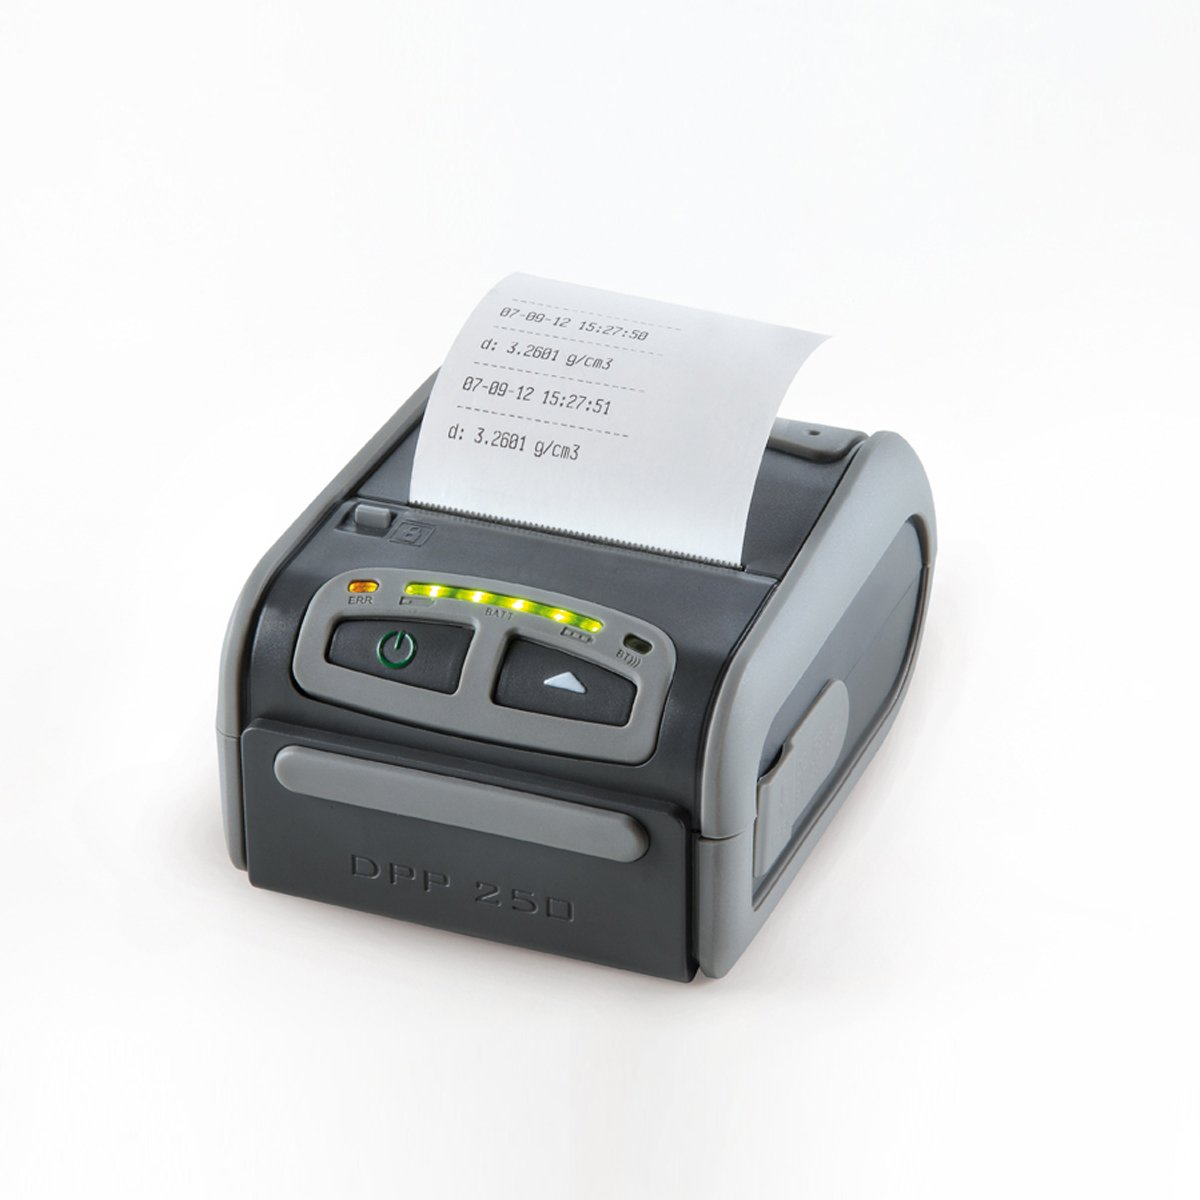 DPP-250 portable thermal printer